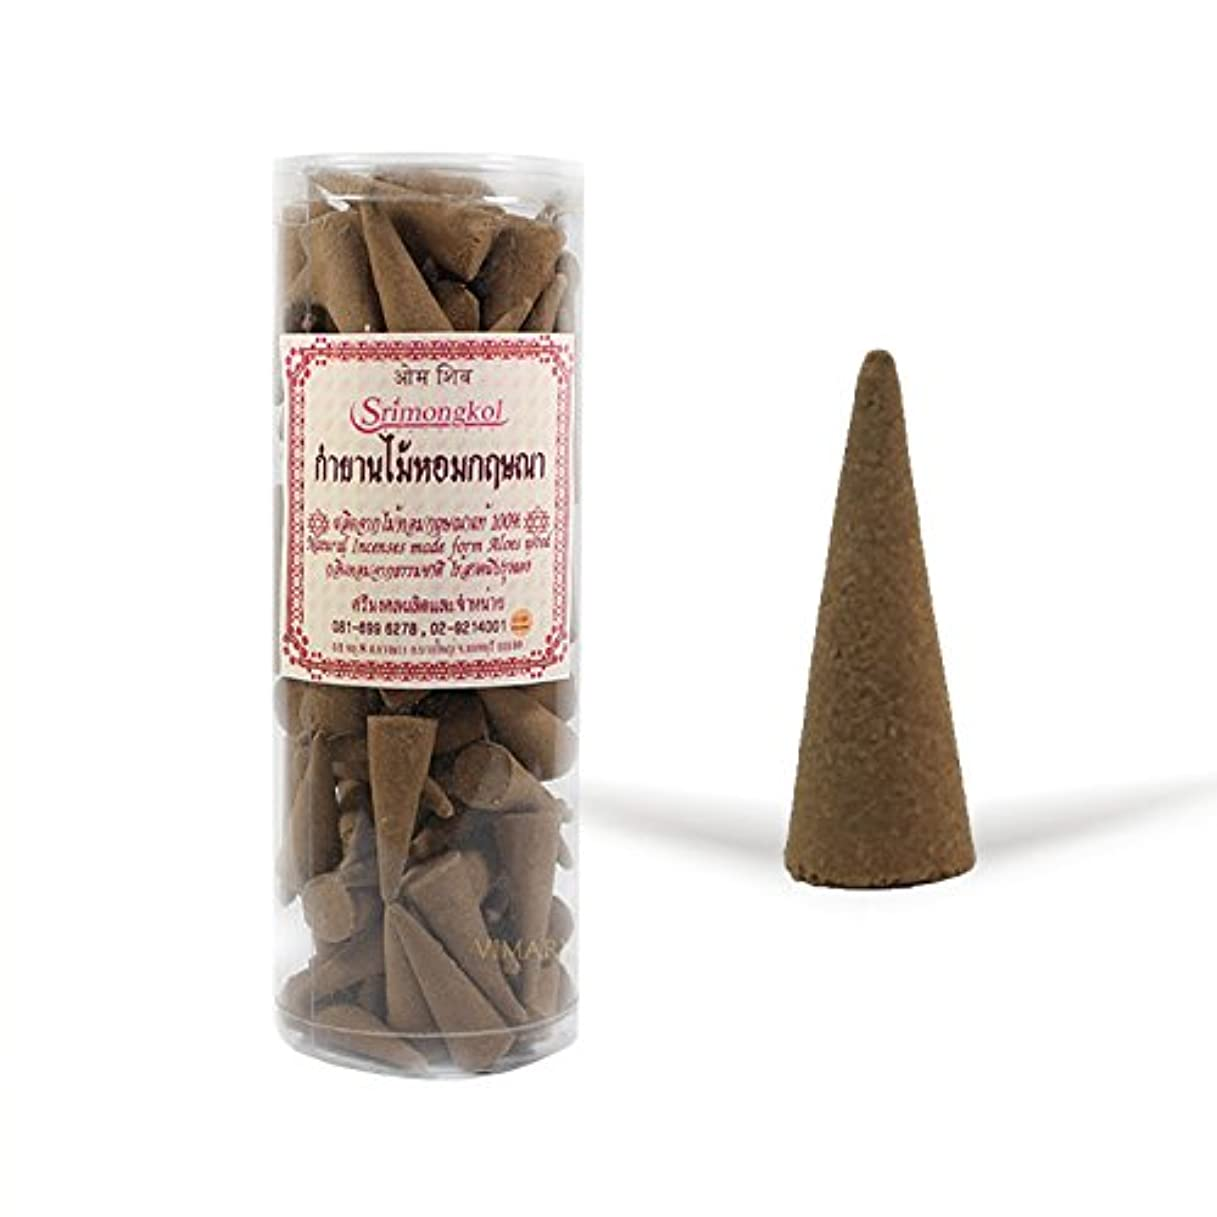 Srimongkol Agarwood Natural Incense Cones 300 Grams (No Chemical):::Srimongkol Agarwoodナチュラル香コーン300グラム(化学薬品なし)